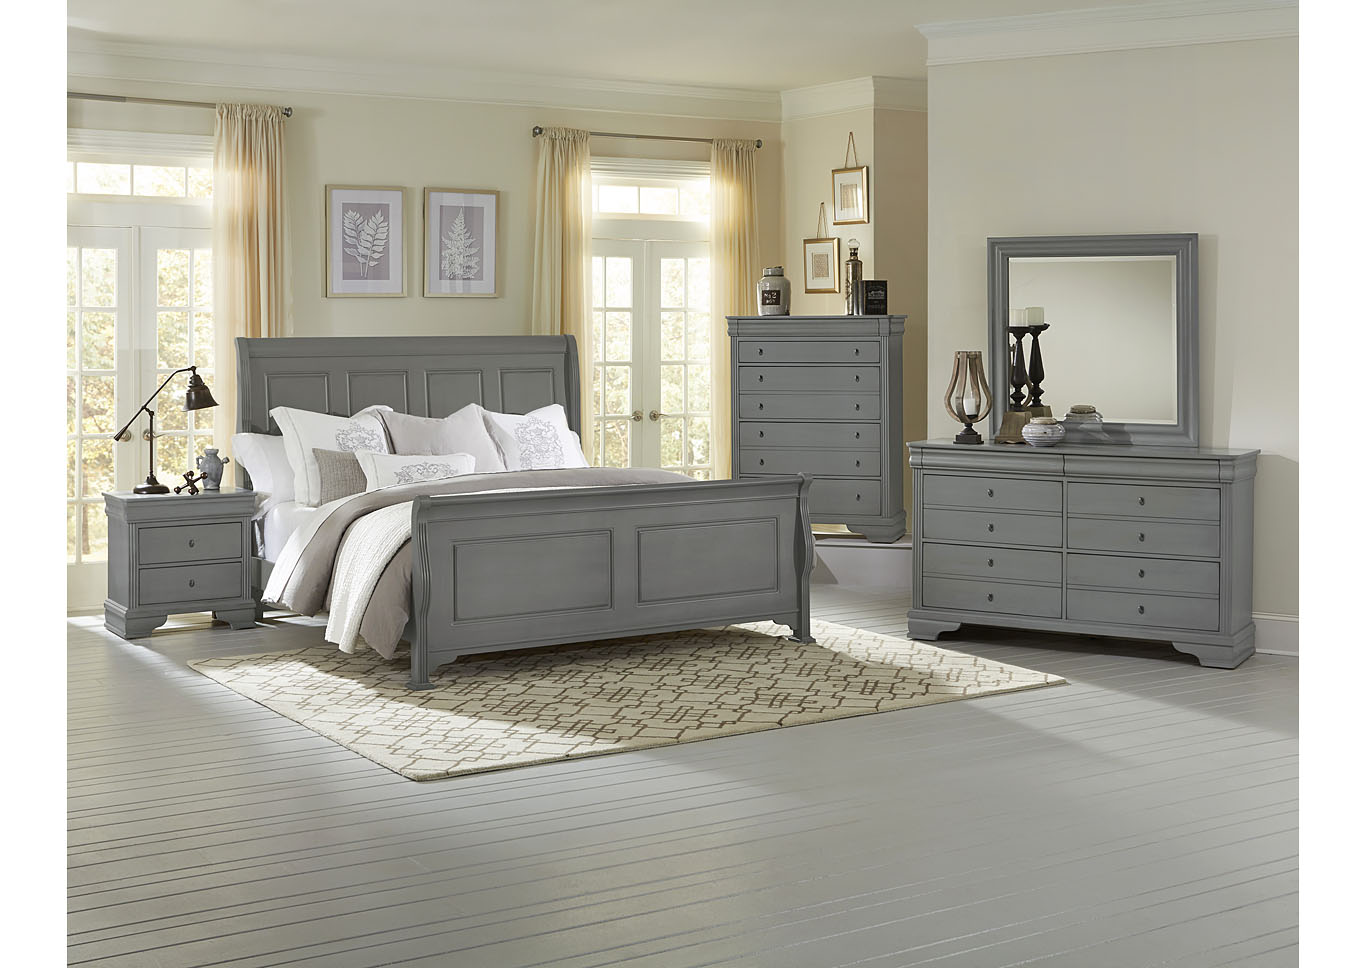 French Market Zinc King Poster Bed w/ Dresser and Mirror,Vaughan-Bassett